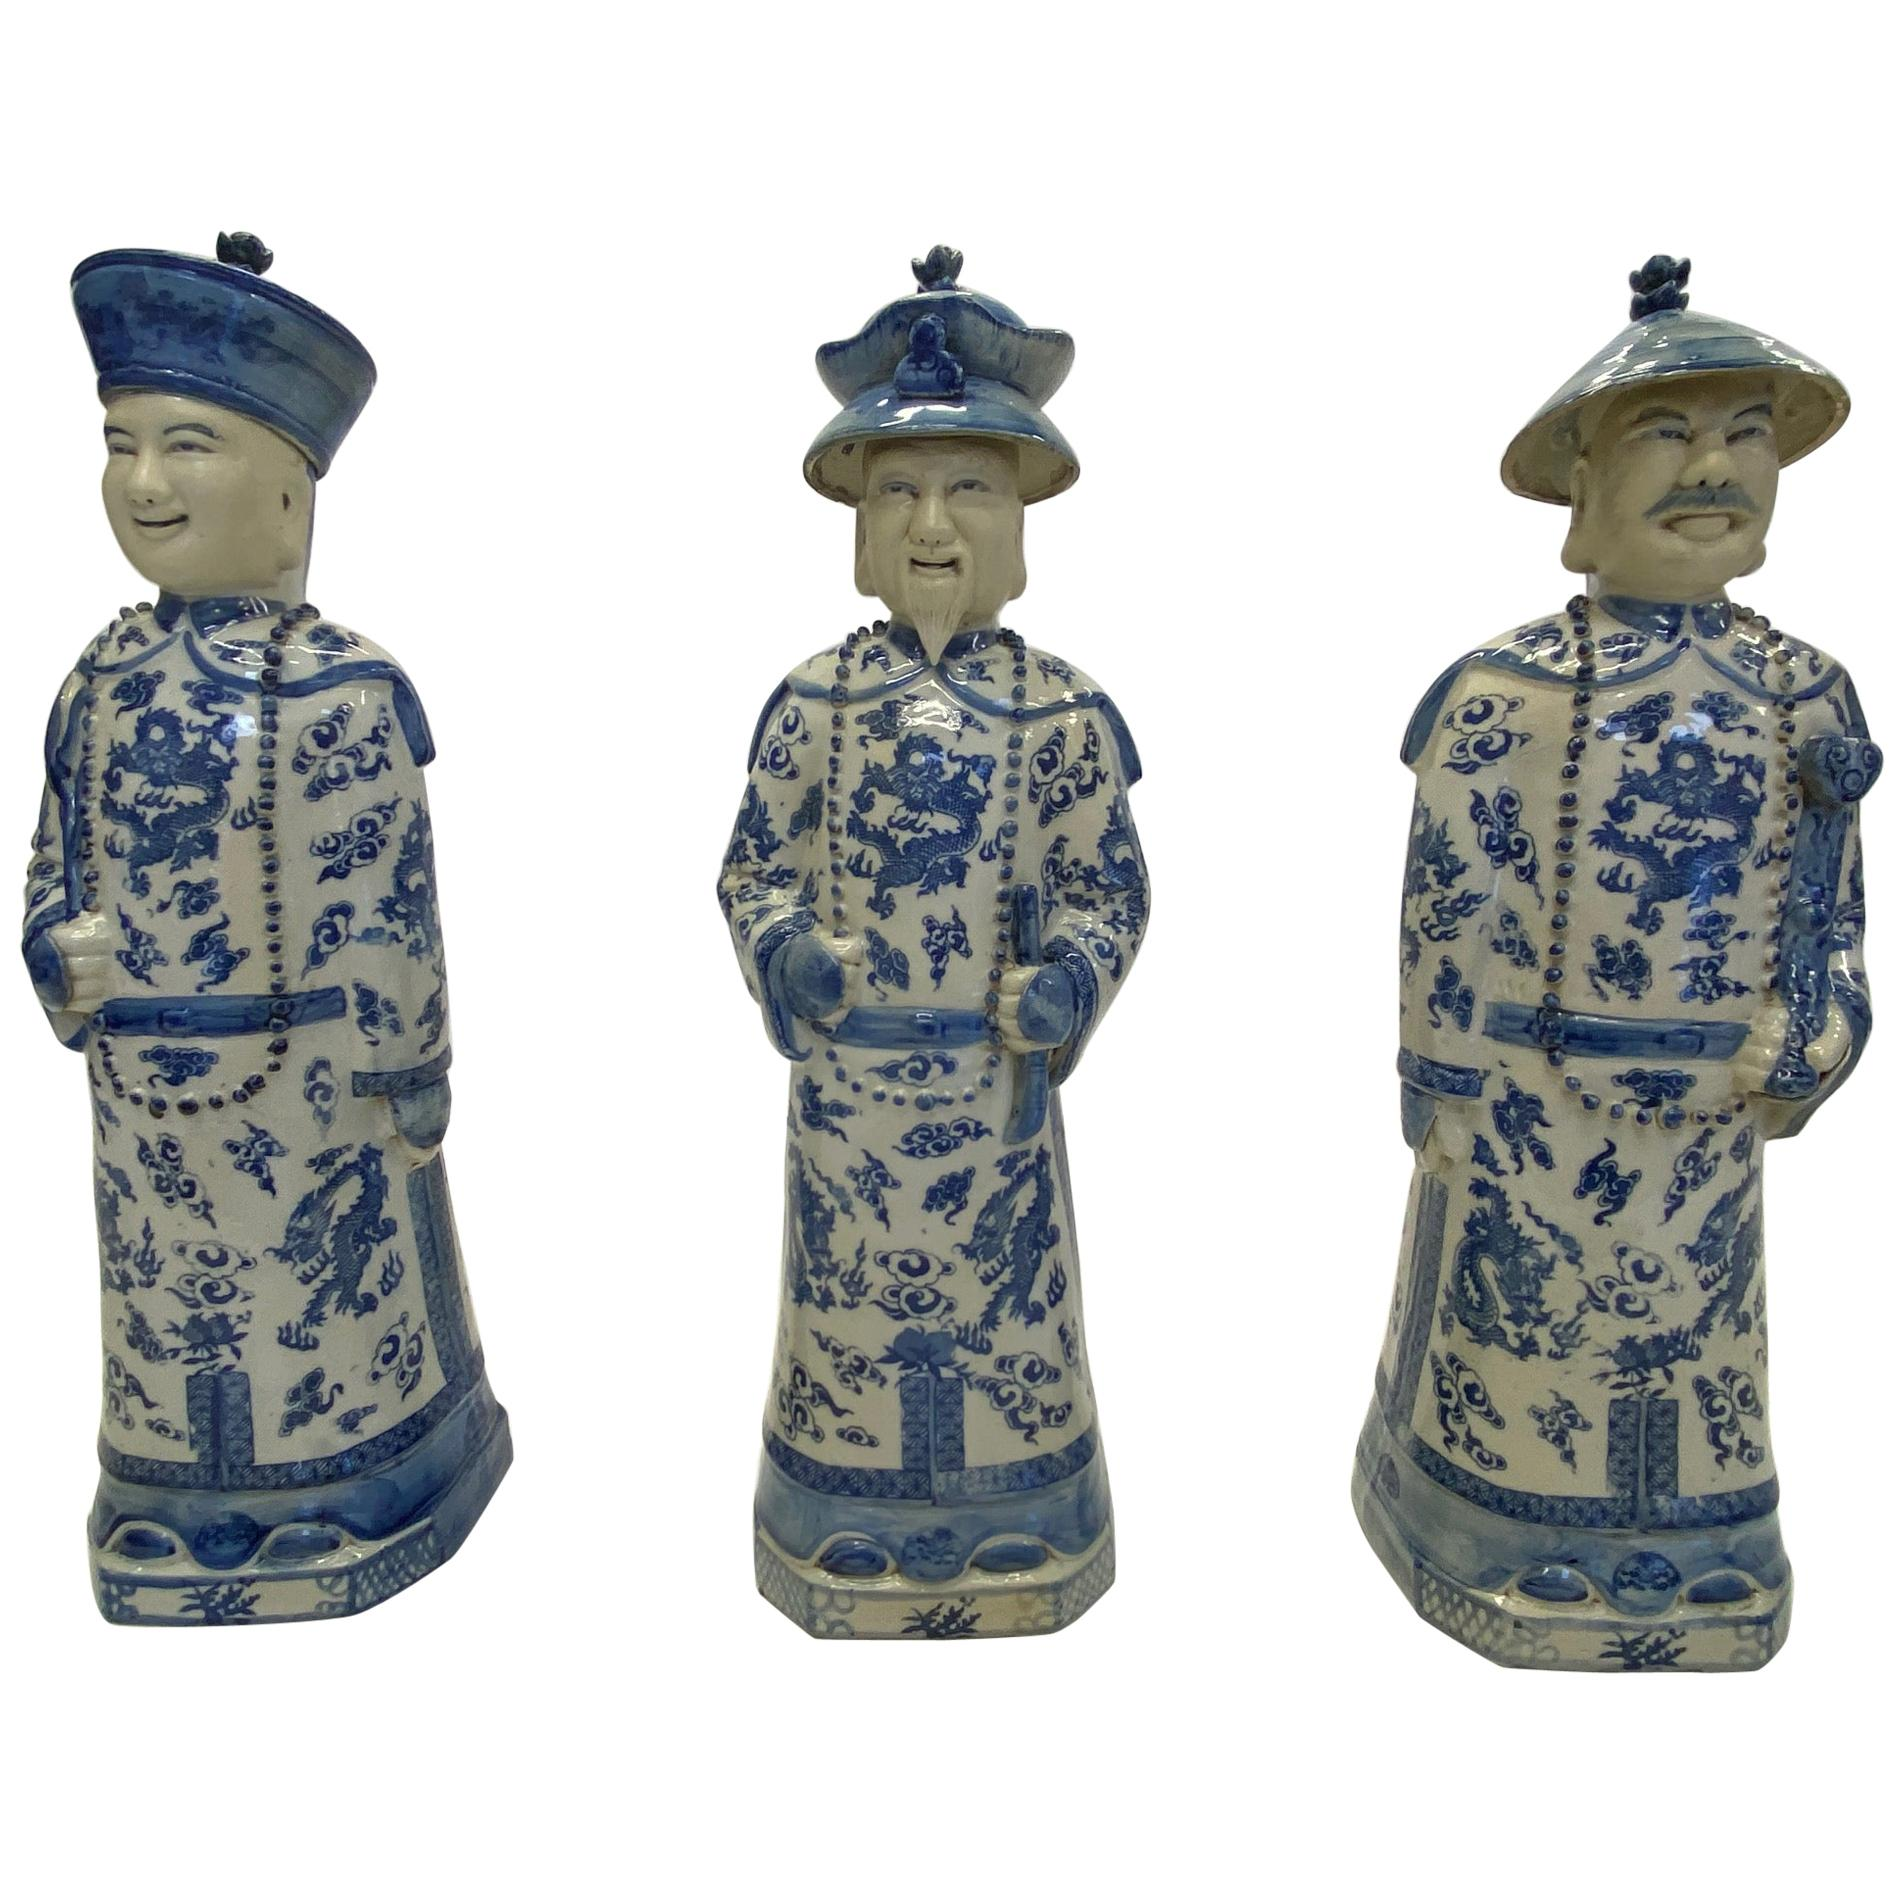 Enchanting Trio of Blue and White Chinese Porcelain Scholarly Figures